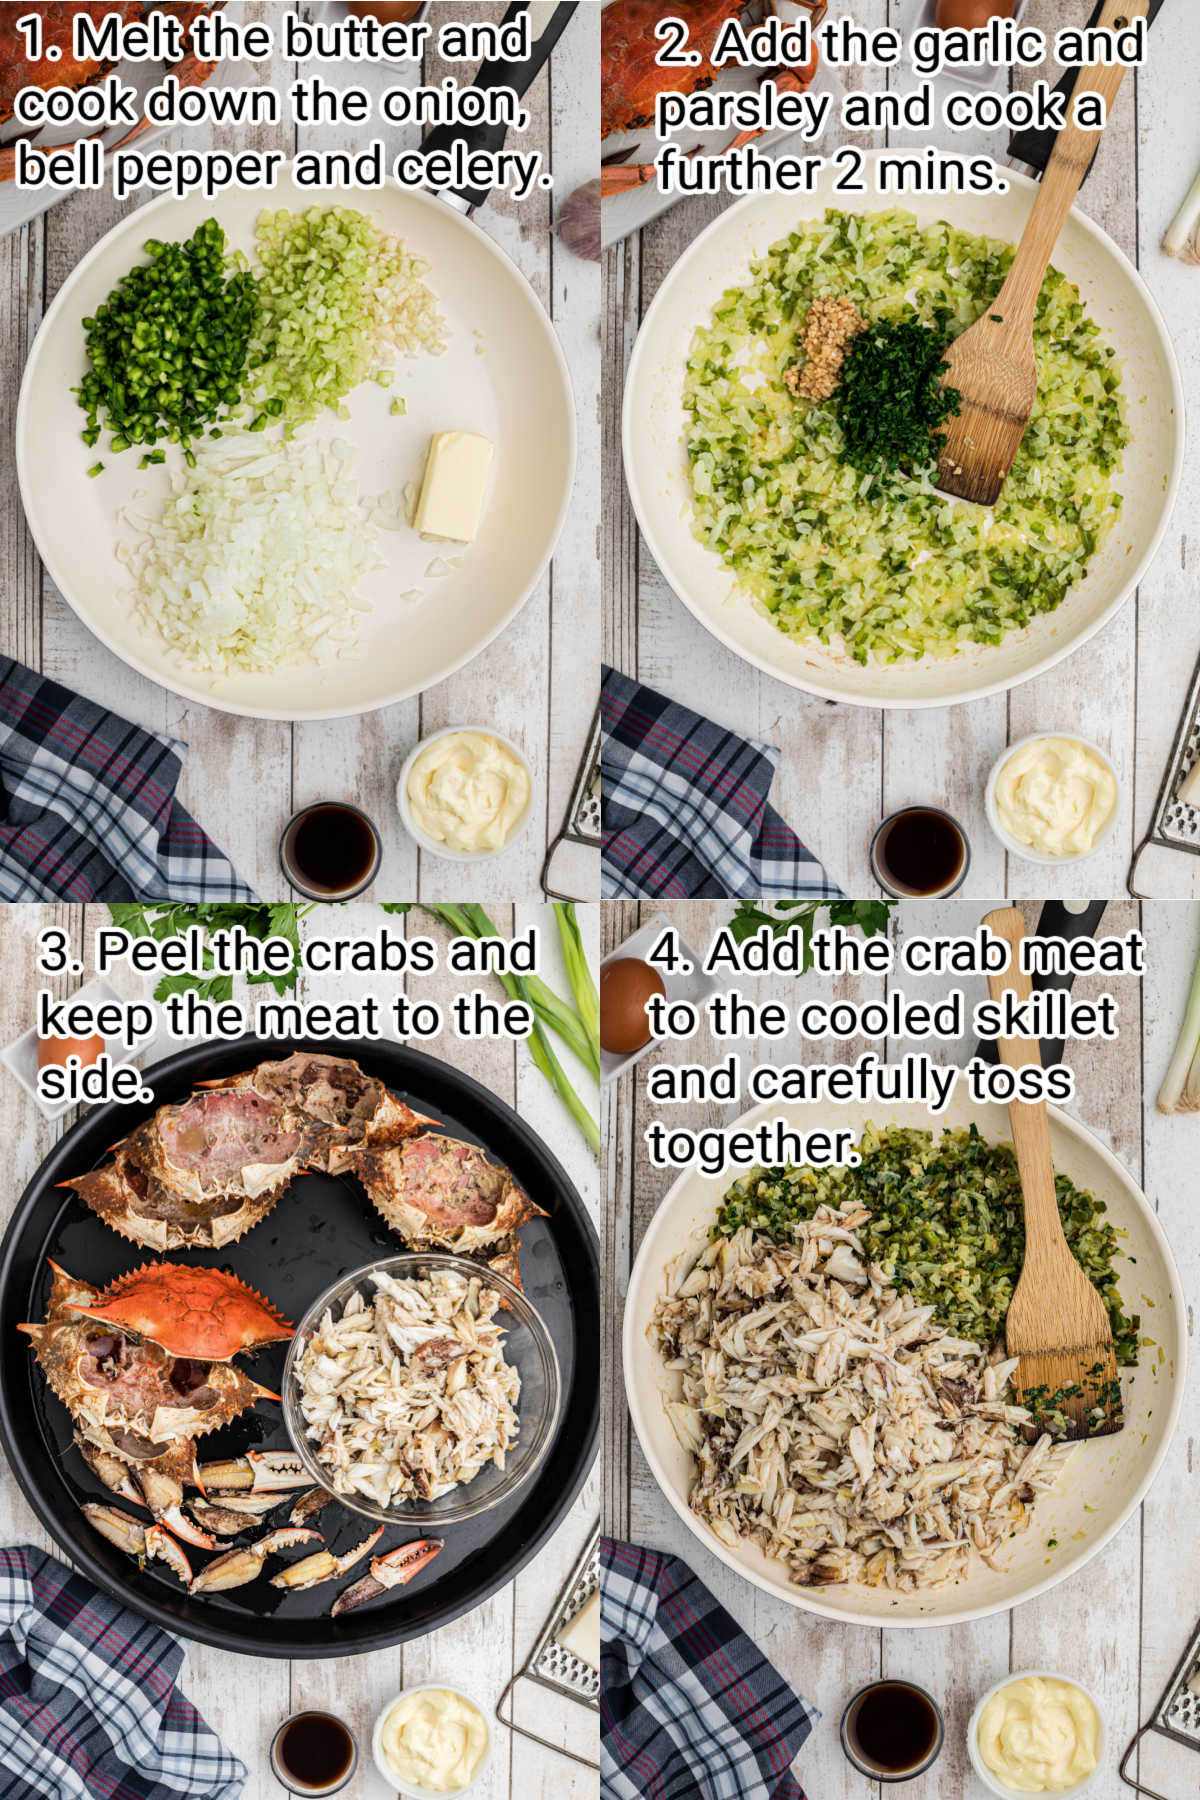 4 images showing how to cook a stuffed crab